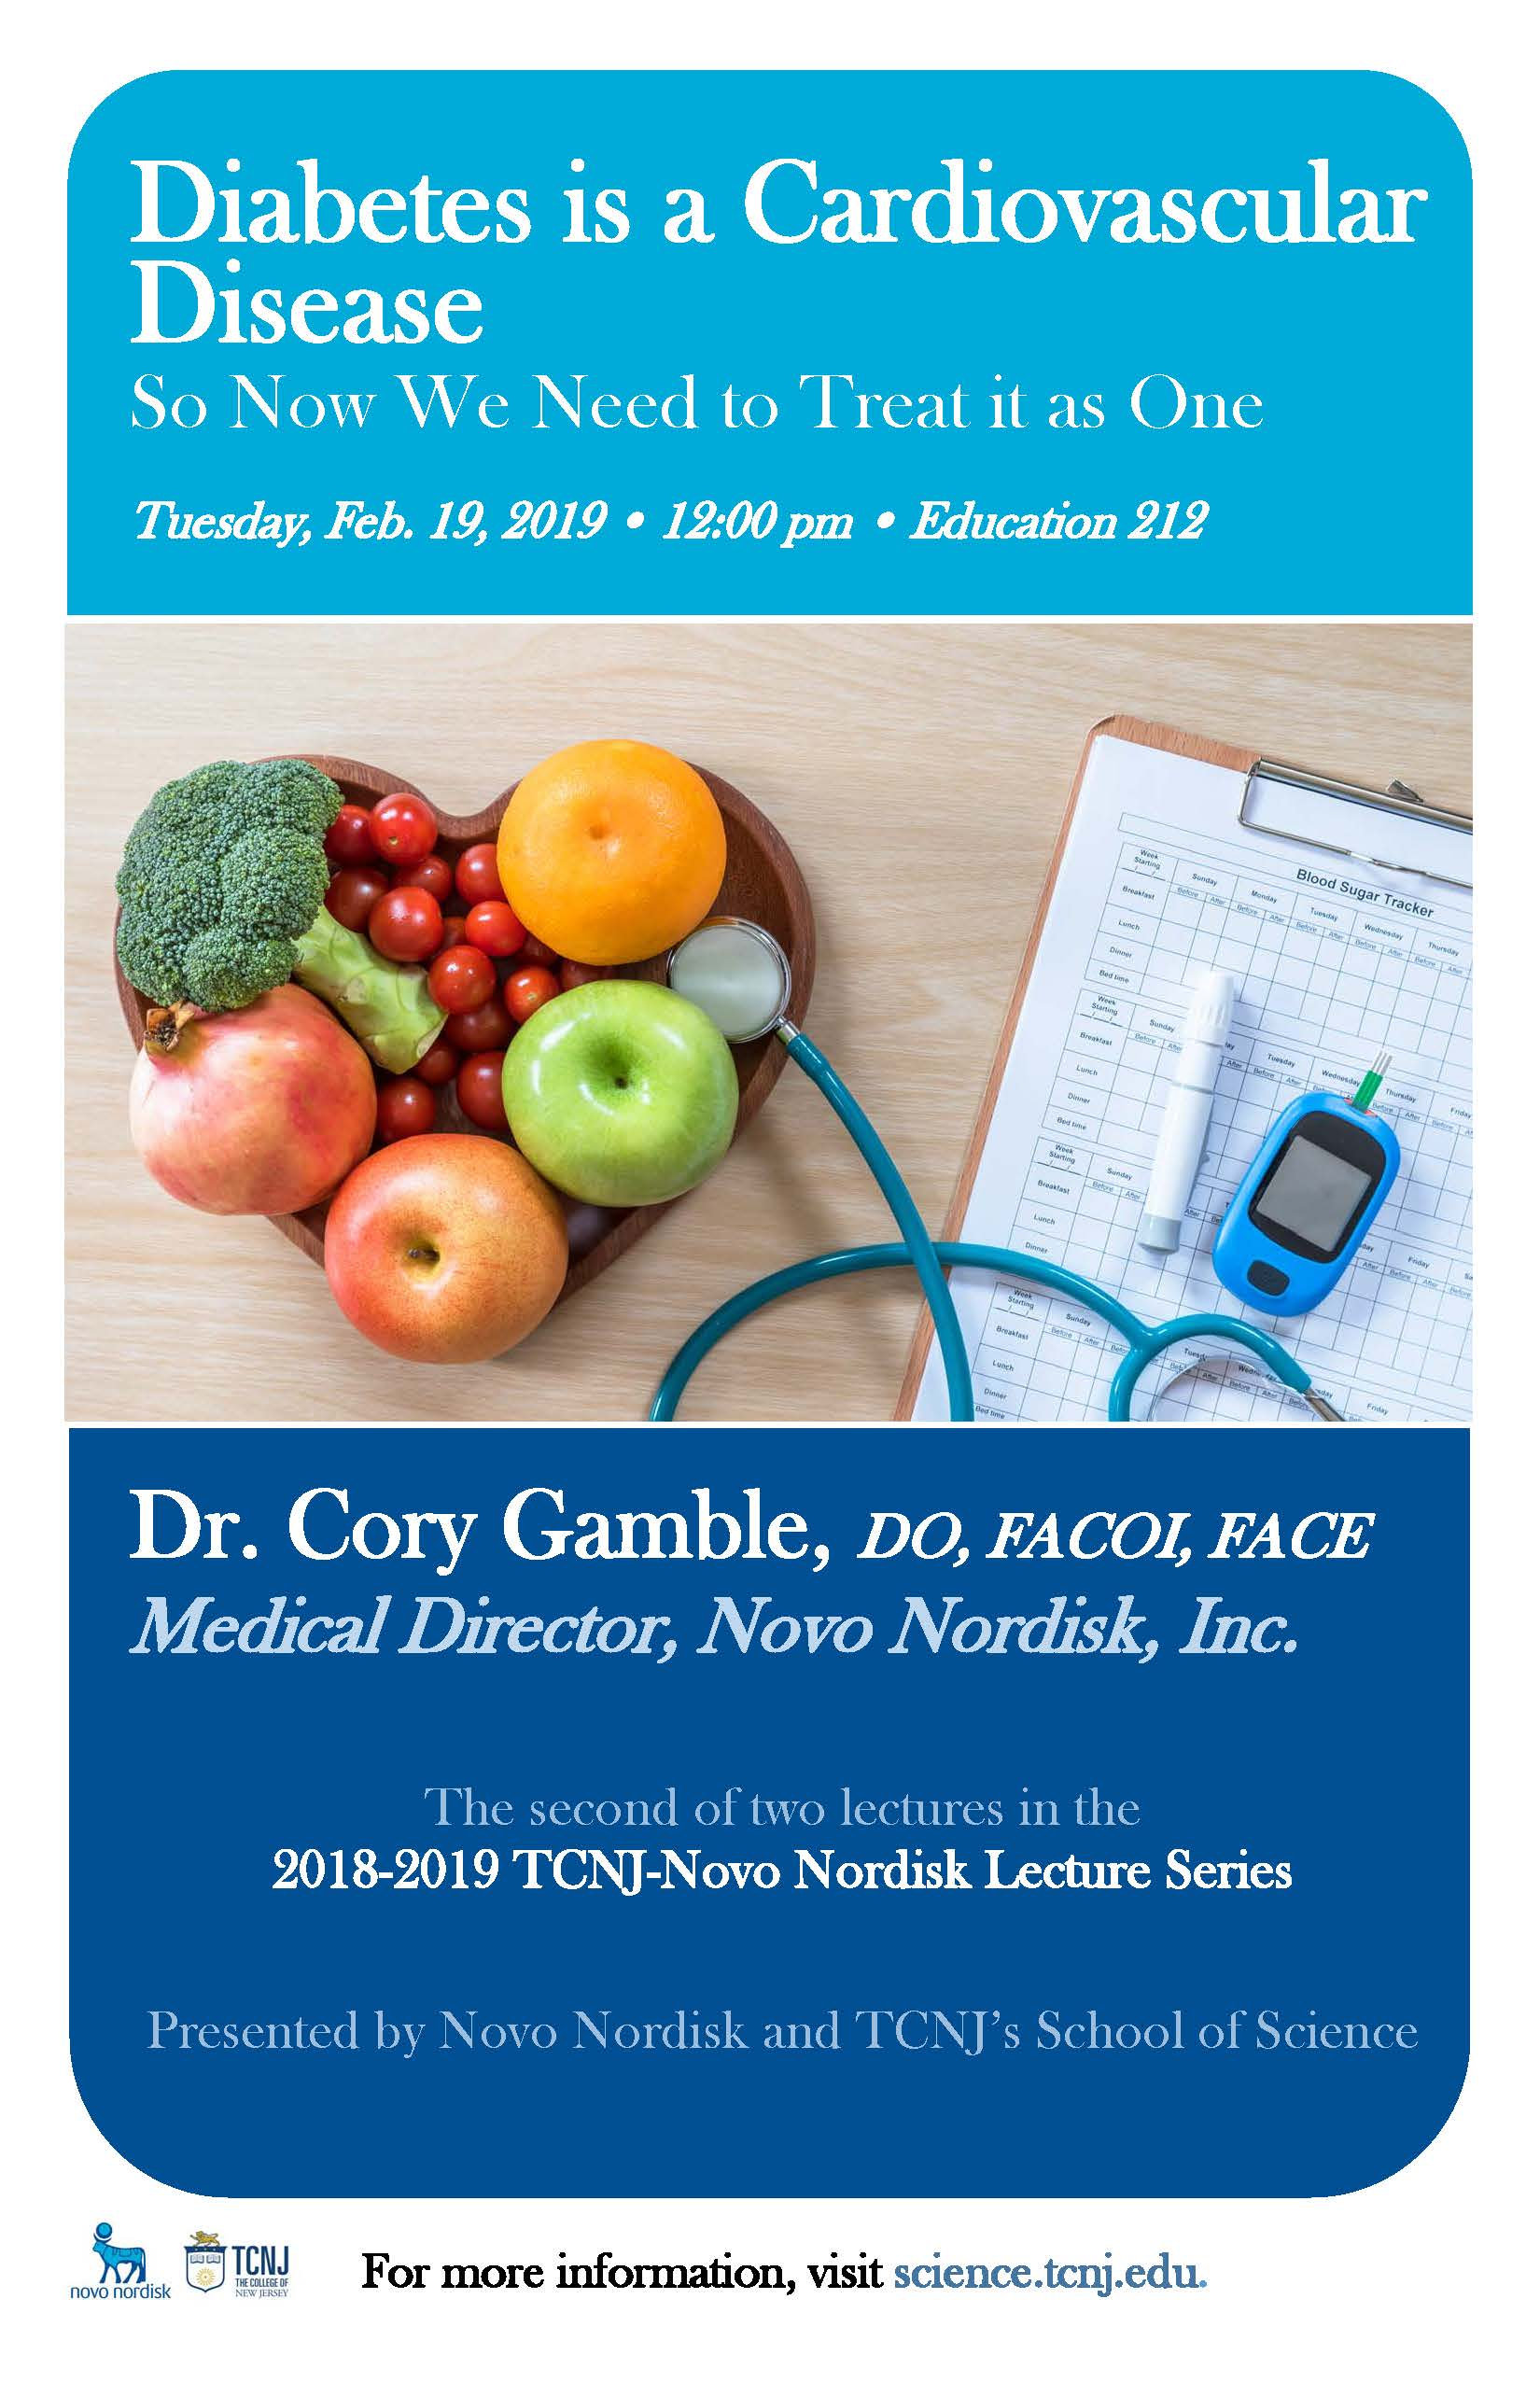 The 2018-2019 Novo Nordisk Lecture Series | School of Science